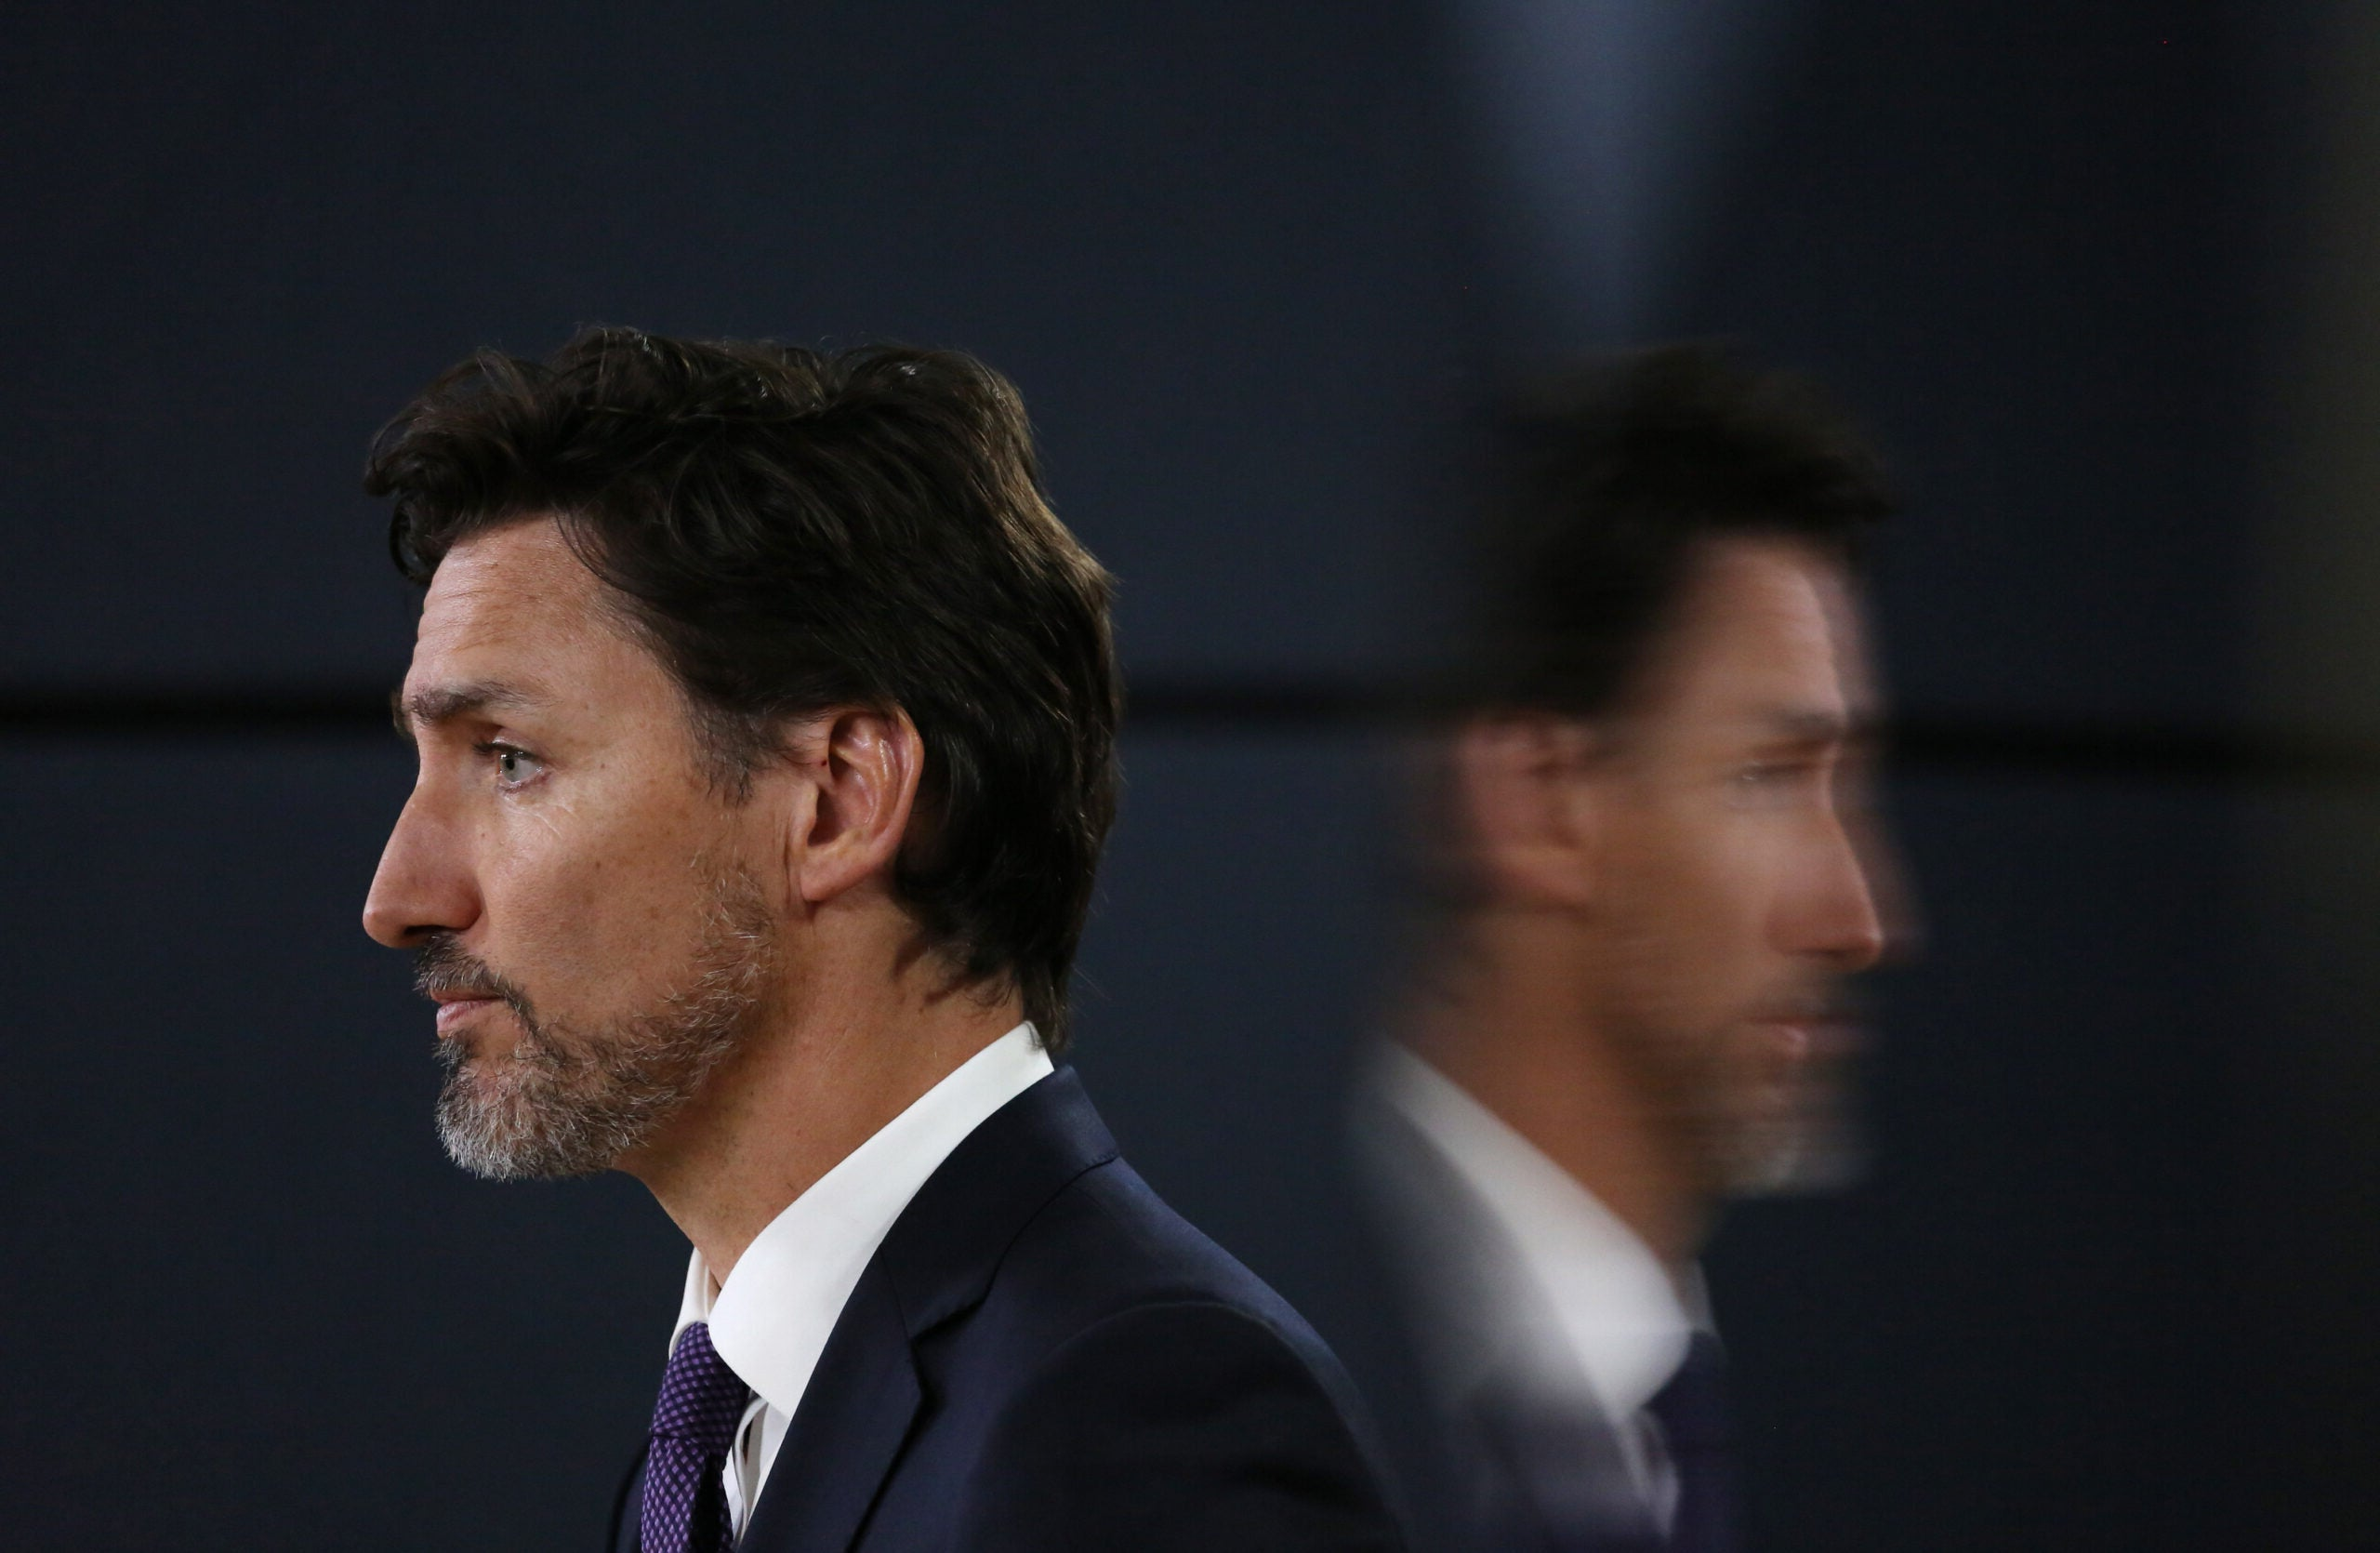 Canadian election 2021: Will Justin Trudeau's gamble pay off?